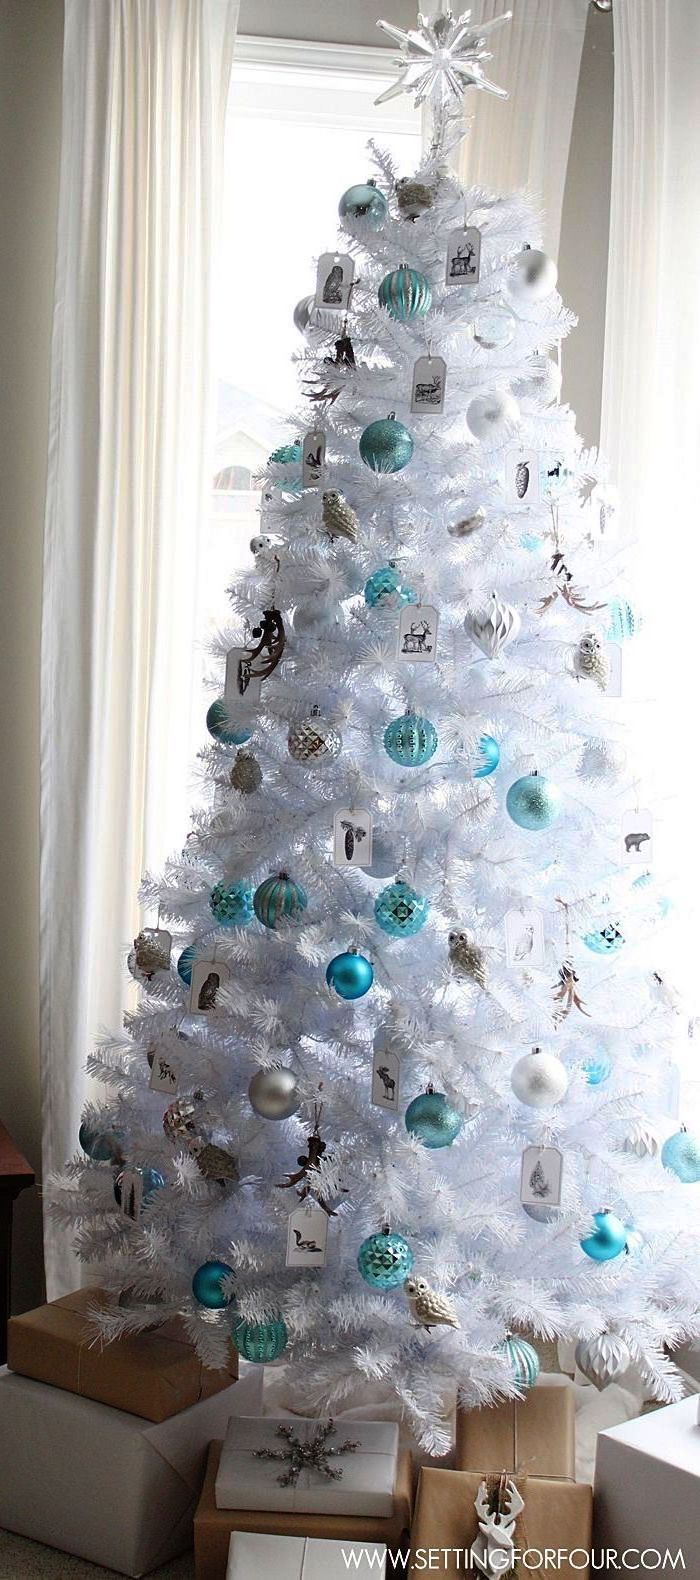 how to decorate a christmas tree with ribbon, white faux tree, silver and turquoise ornaments, wrapped presents underneath